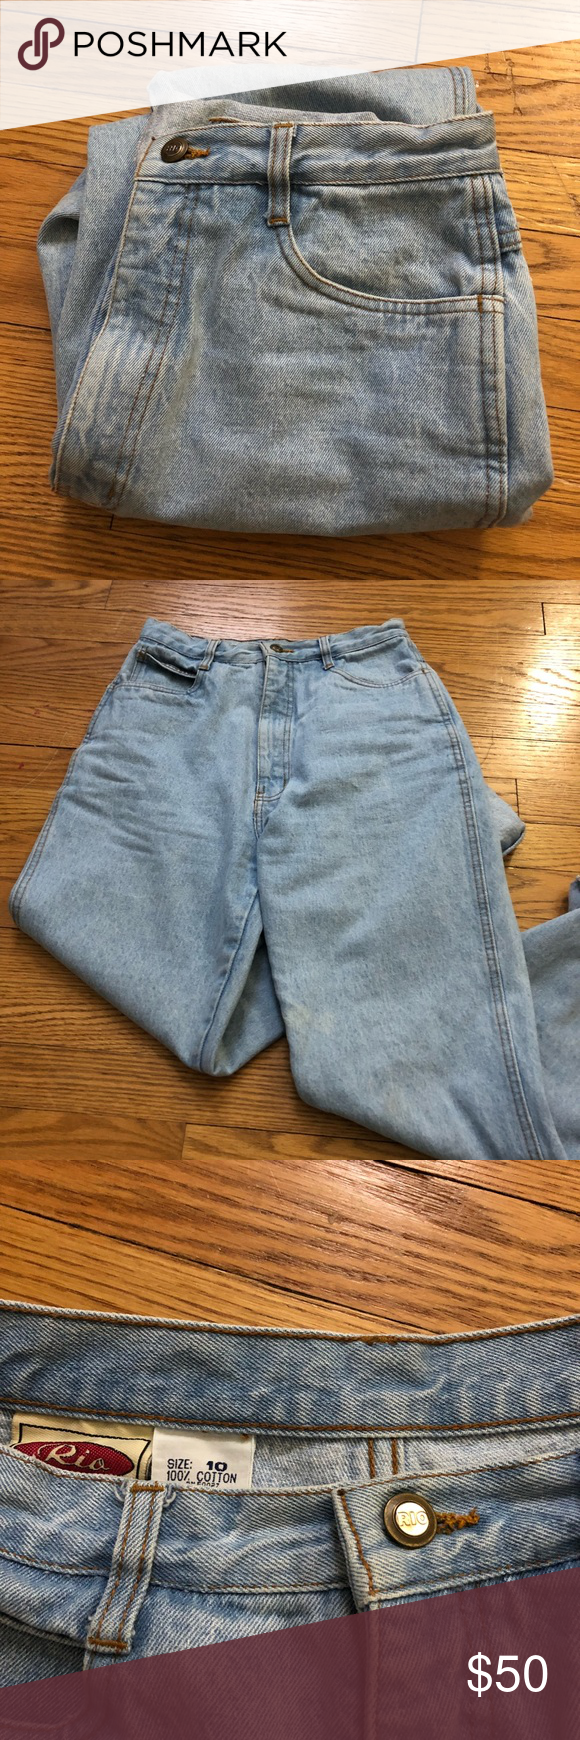 Vintage Rio Mom Jeans Light Wash High Waisted Rio Mom Jeans Vintage But Look